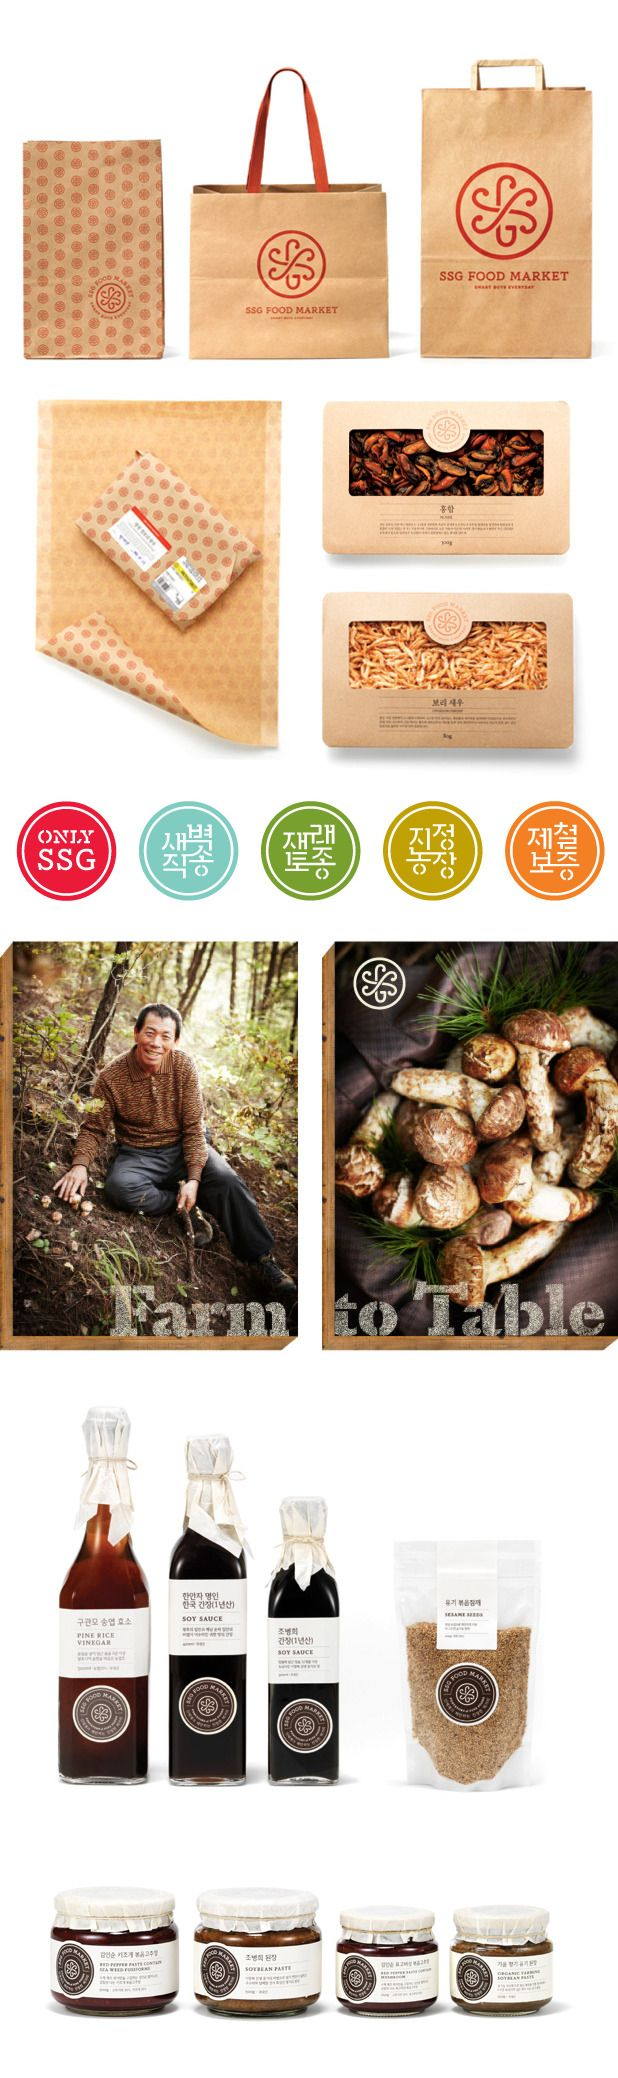 SSG Food Market branding and packaging